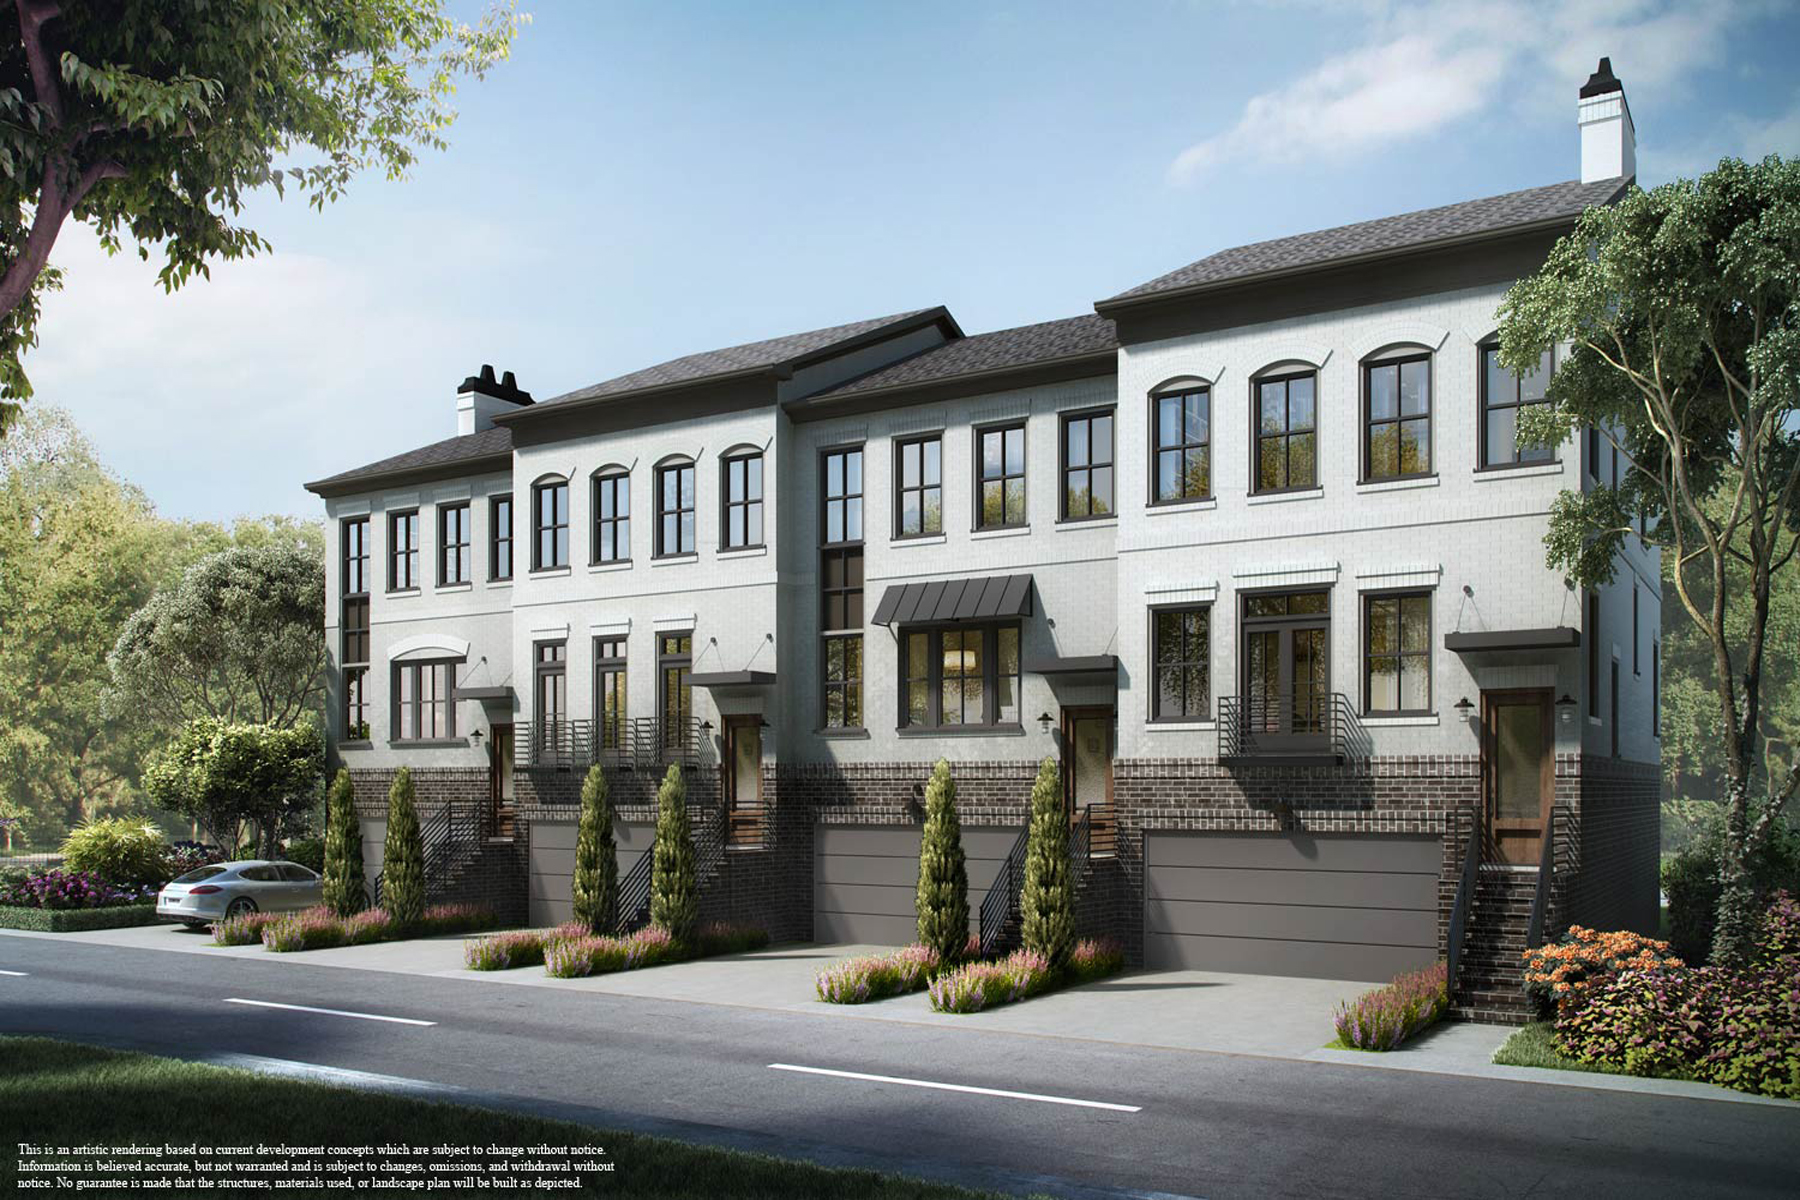 联栋屋 为 销售 在 Sophisticated Townhome in the Heart of Edgewood 1388 La France Street Unit #9 亚特兰大, 乔治亚州, 30307 美国